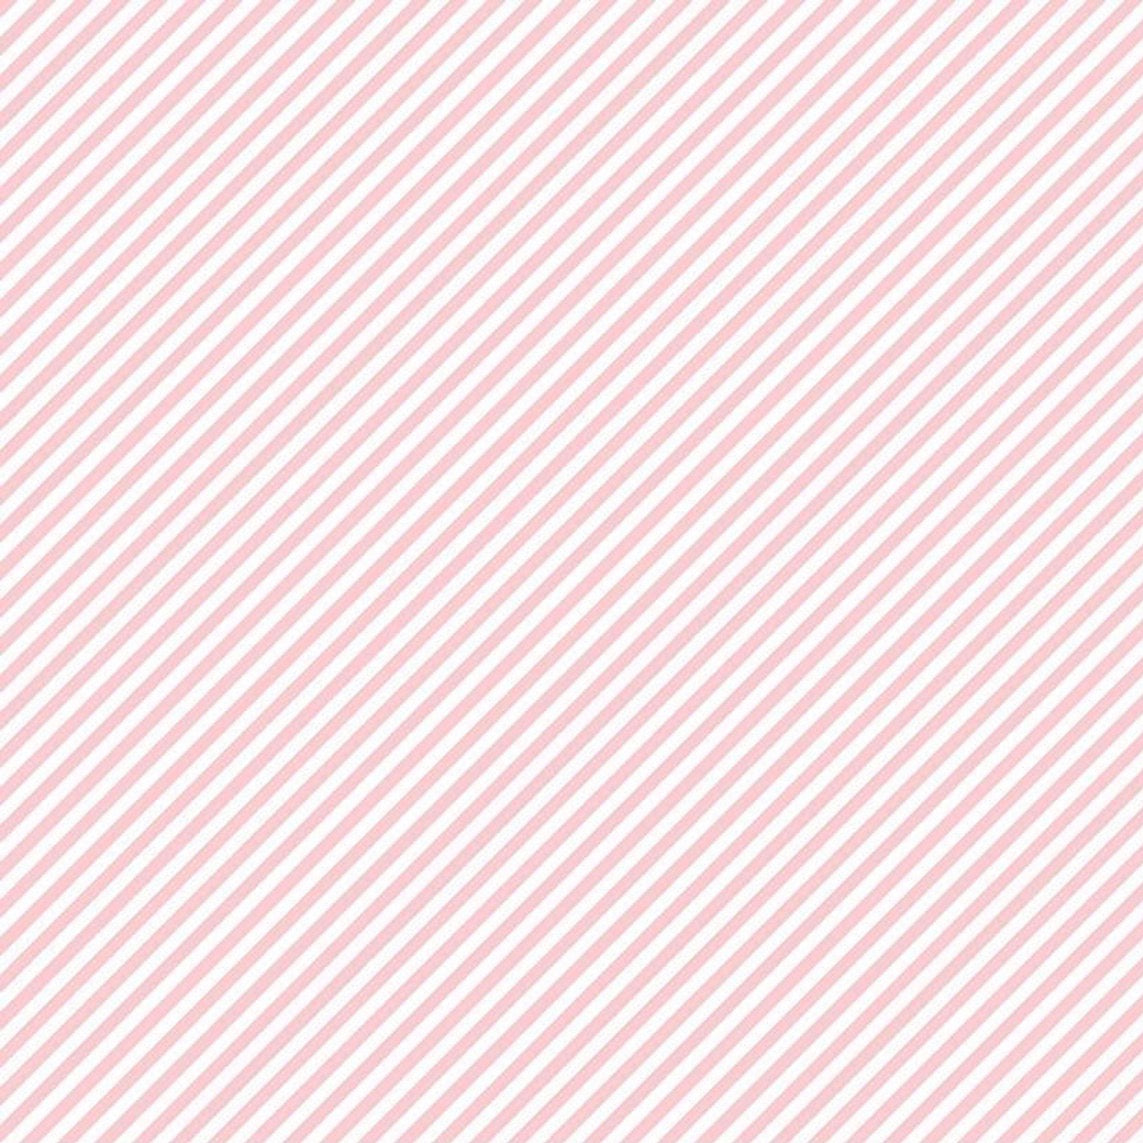 Simple Goodness Bias Stripes in Pink by Tasha Noel for Riley Blake fabric with pink and white stripes